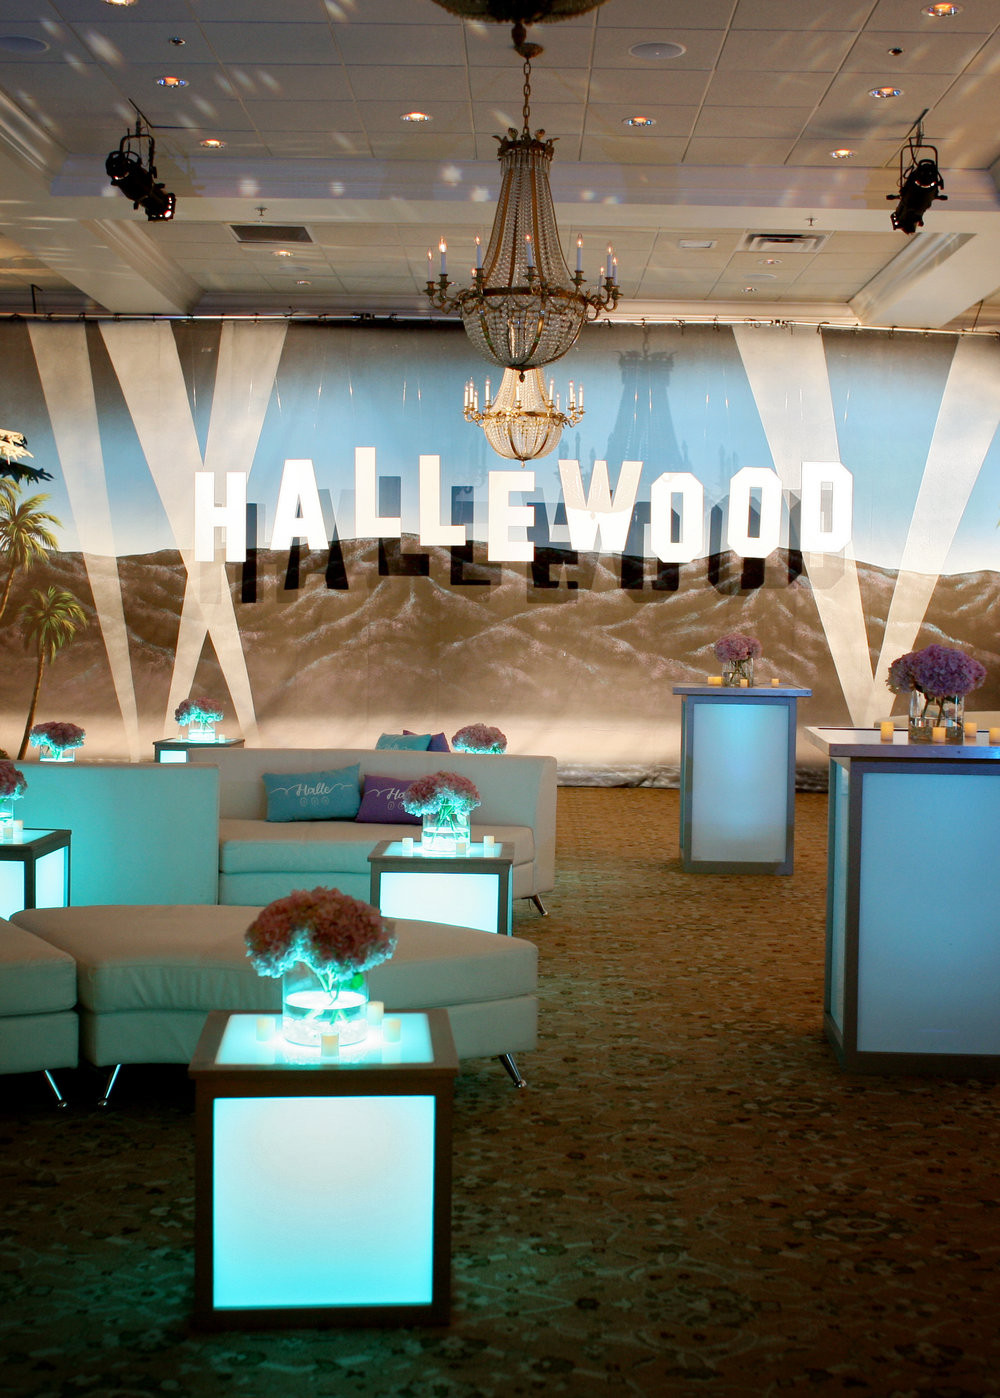 1Hallewood Hollywood Bar Bat Mitzvah theme Nashville.jpg